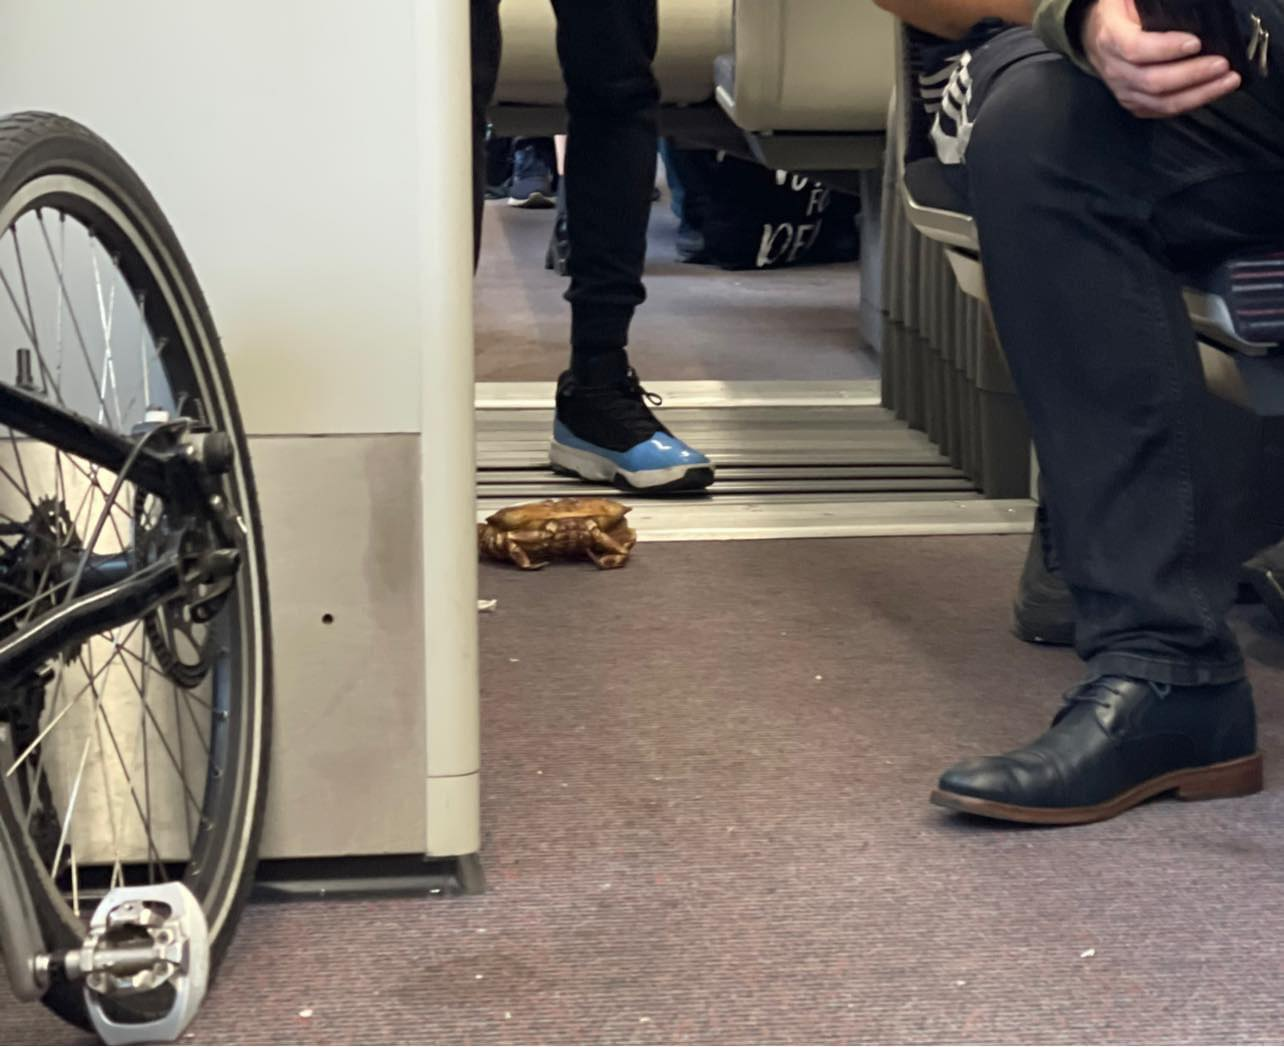 A crab on the train to Southend